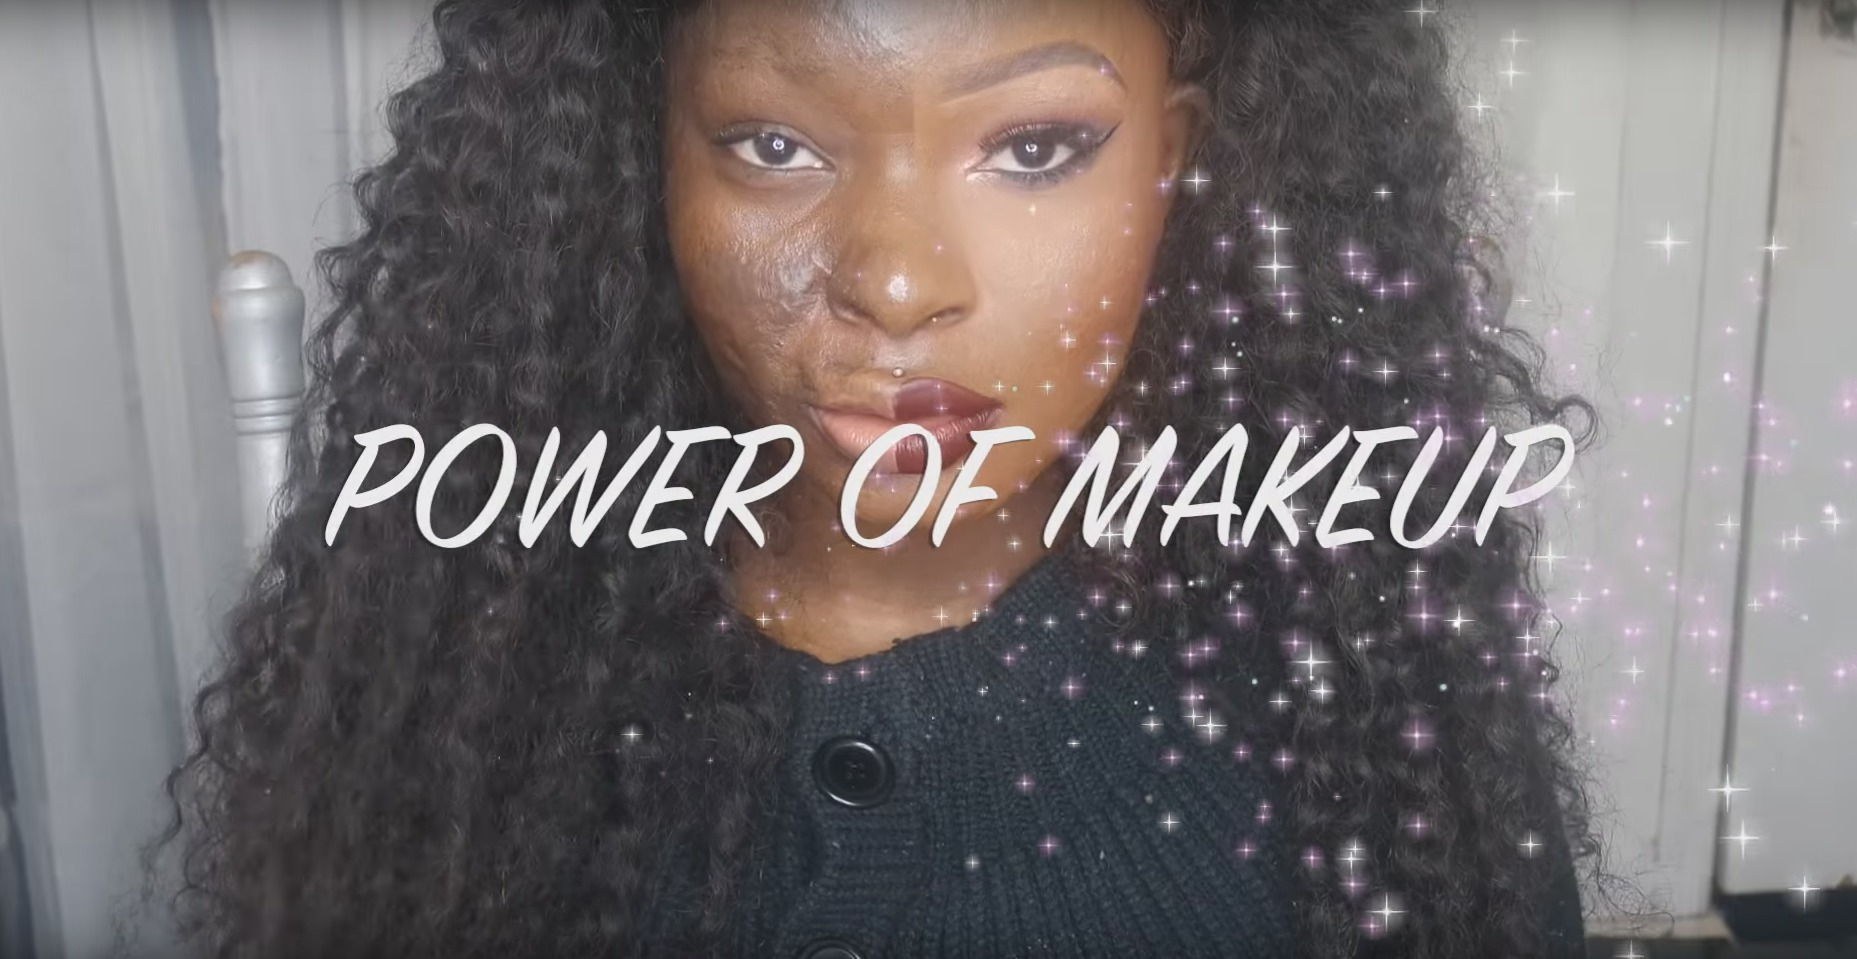 Watch this burn survivor's gorgeously empowering makeup tutorials